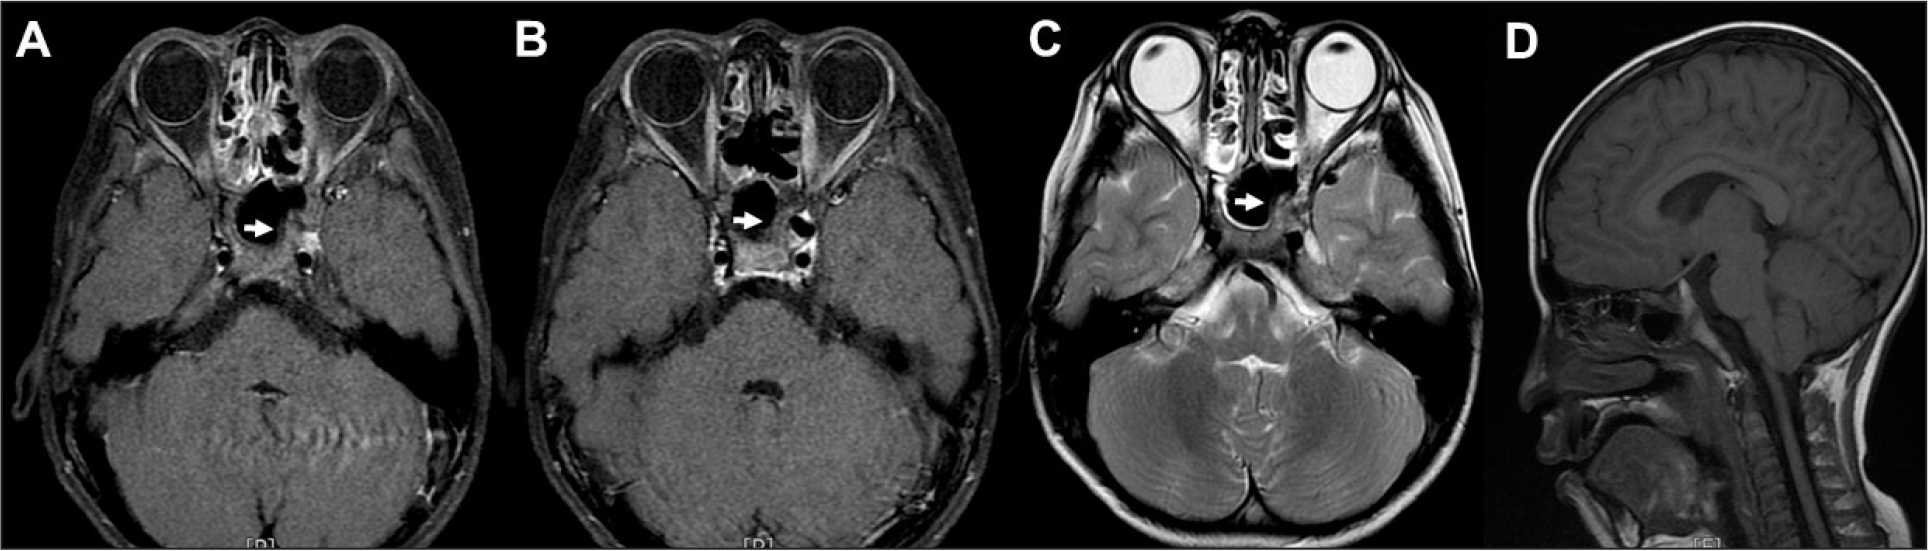 (A) Brain magnetic resonance imaging at presentation. (B) Axial T1-weighted images with gadolinium enhancement and fat suppression show isointense to hyperintense lesions in the sphenoid and cavernous sinus expanding to the left orbit apex, suggesting postoperative hematoma (arrows). (C) Axial T2-weighted image shows heterogeneous hyperintensity in the same lesion (arrow). (D) Sagittal T1-weighted image shows mild infraposition of cerebellar tonsil below the foramen magnum.